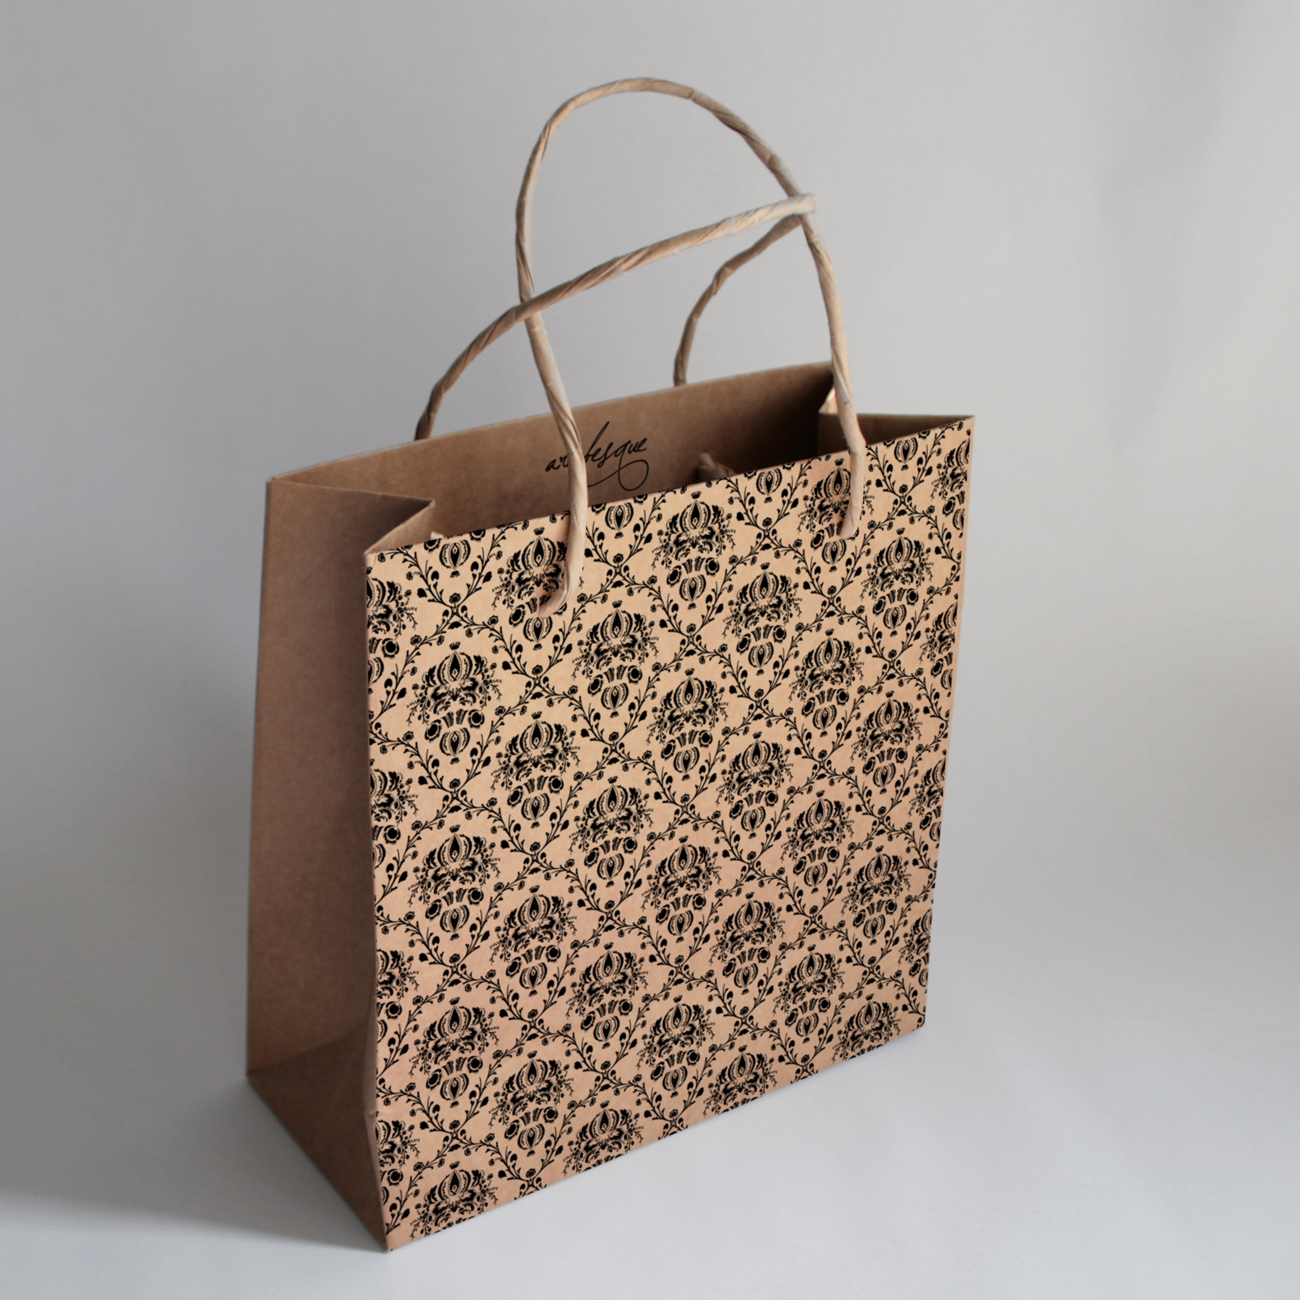 designer coach bags 8wi1  Marin Trail brown paper bag packaging: a branded brown shopping  Marin  Trail Brown Paper Bag Packaging A Branded Brown Shopping